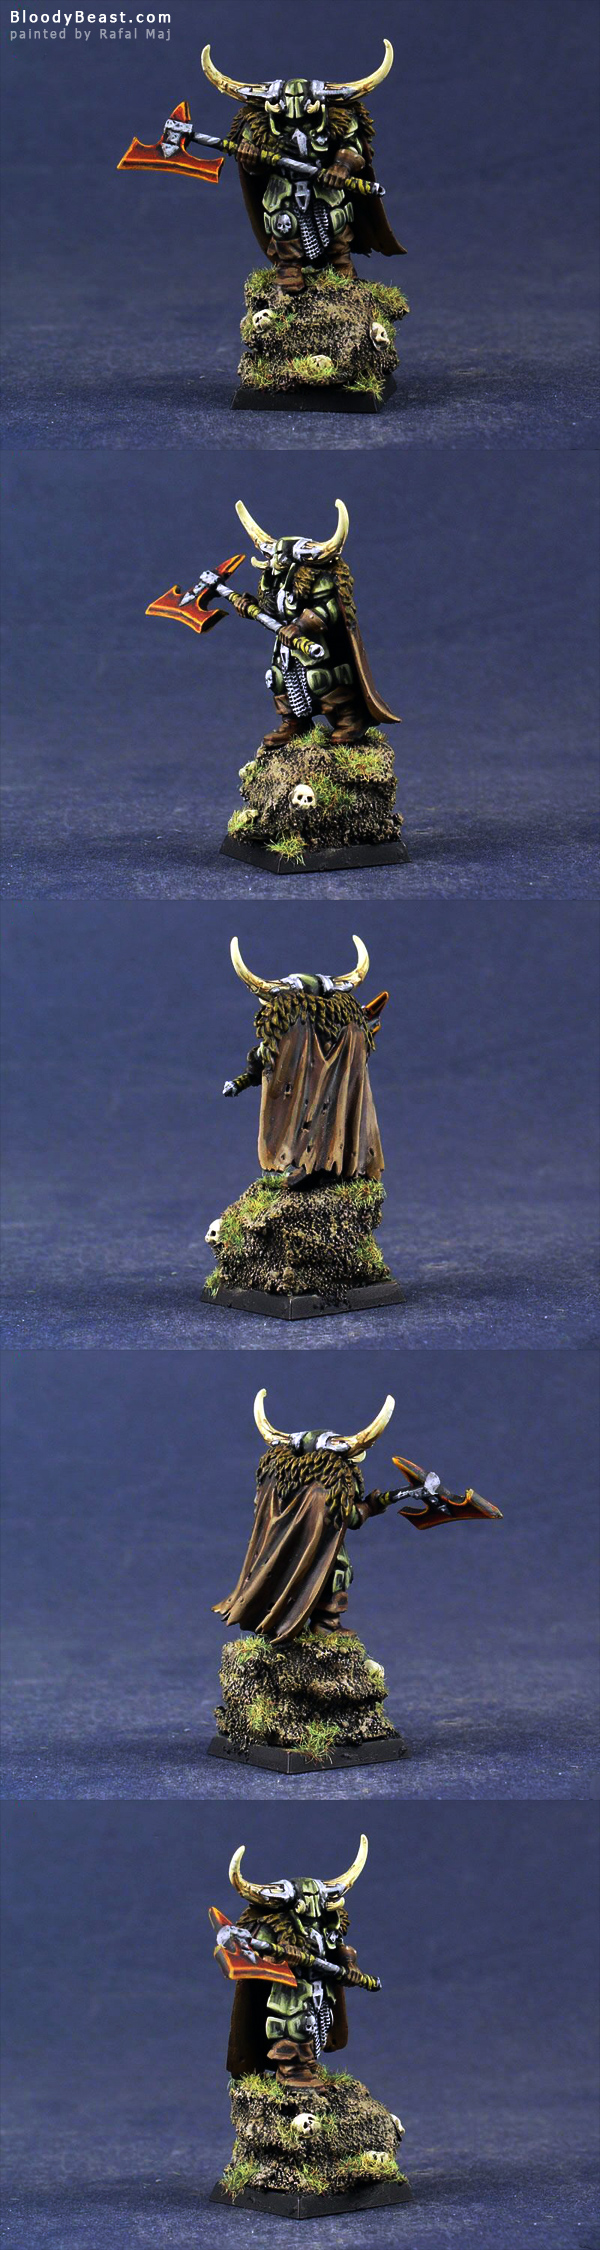 Chaos Lord of Nurgle painted by Rafal Maj (BloodyBeast.com)